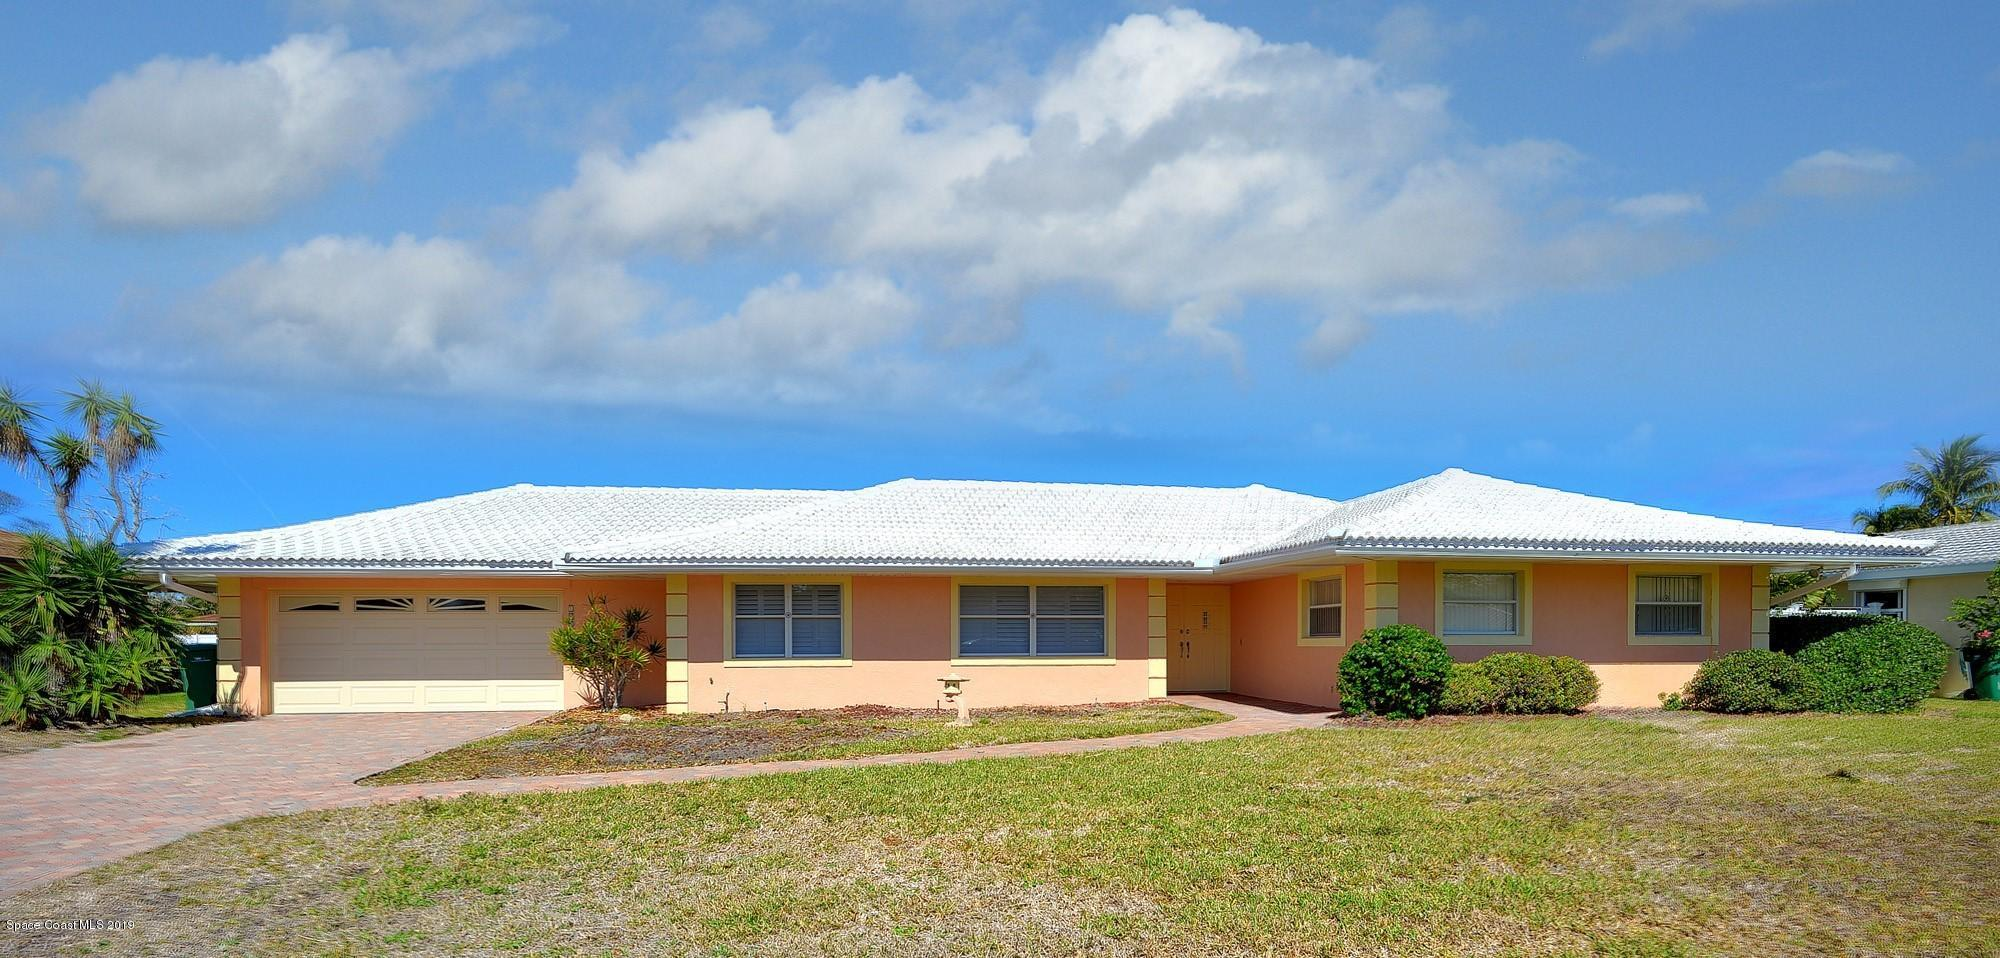 Single Family Home for Sale at 1956 Shore View 1956 Shore View Indialantic, Florida 32903 United States